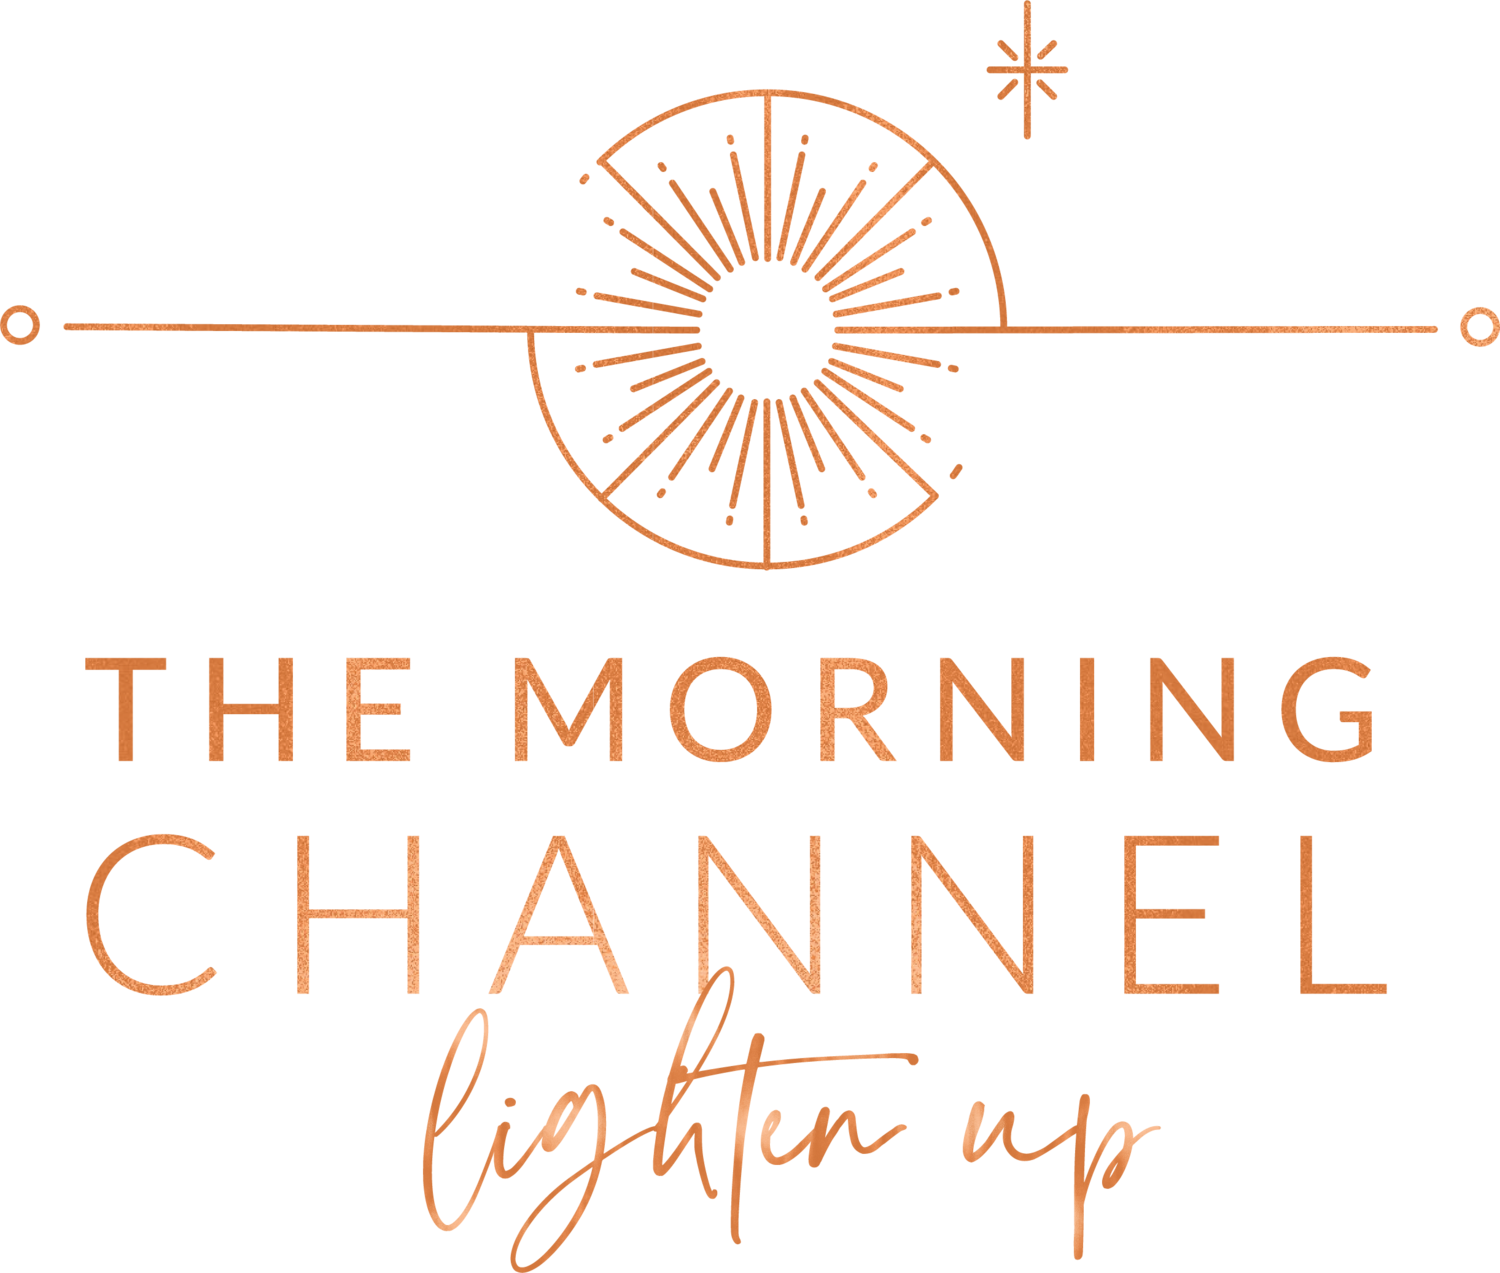 The Morning Channel